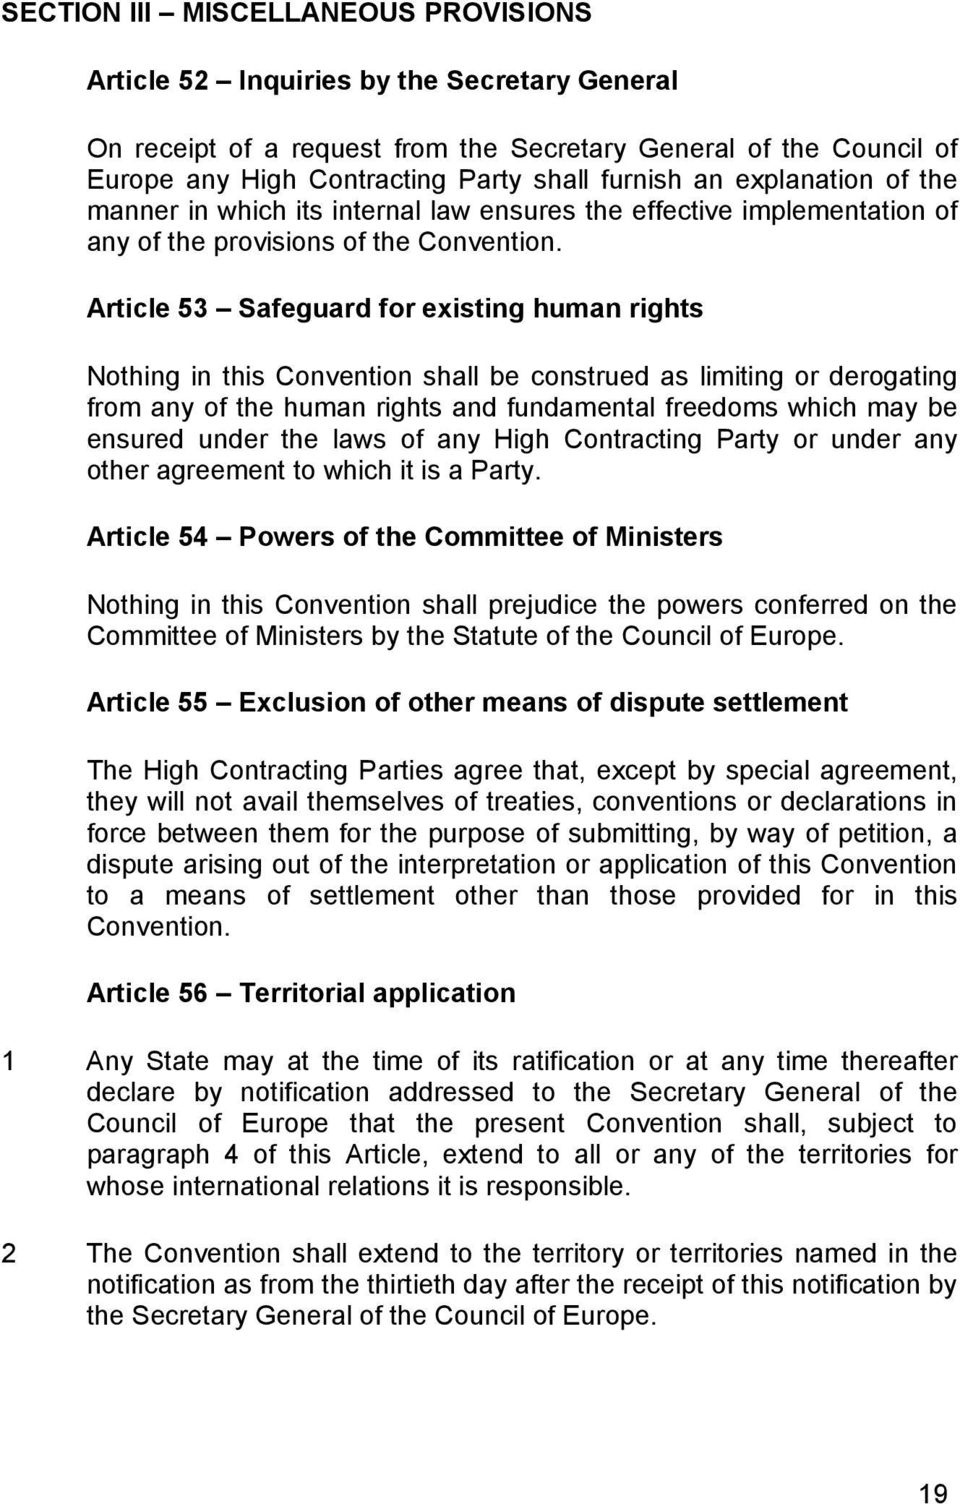 Article 53 Safeguard for existing human rights Nothing in this Convention shall be construed as limiting or derogating from any of the human rights and fundamental freedoms which may be ensured under